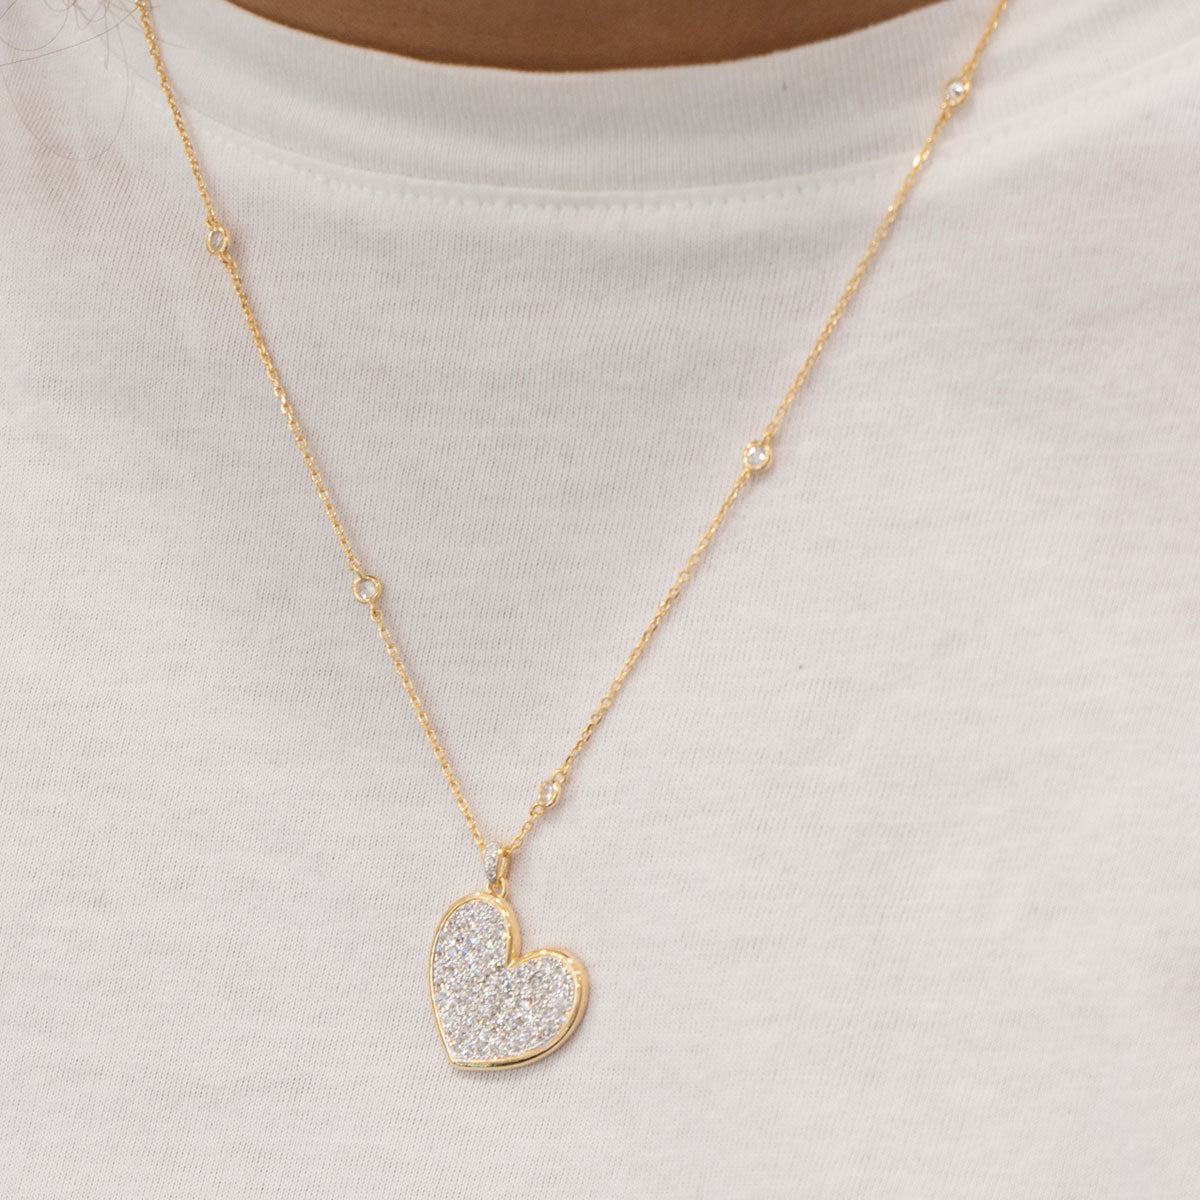 Chokers - Chain Choker 50 cm With Zircons and Heart Subject - 3 | Rue des Mille